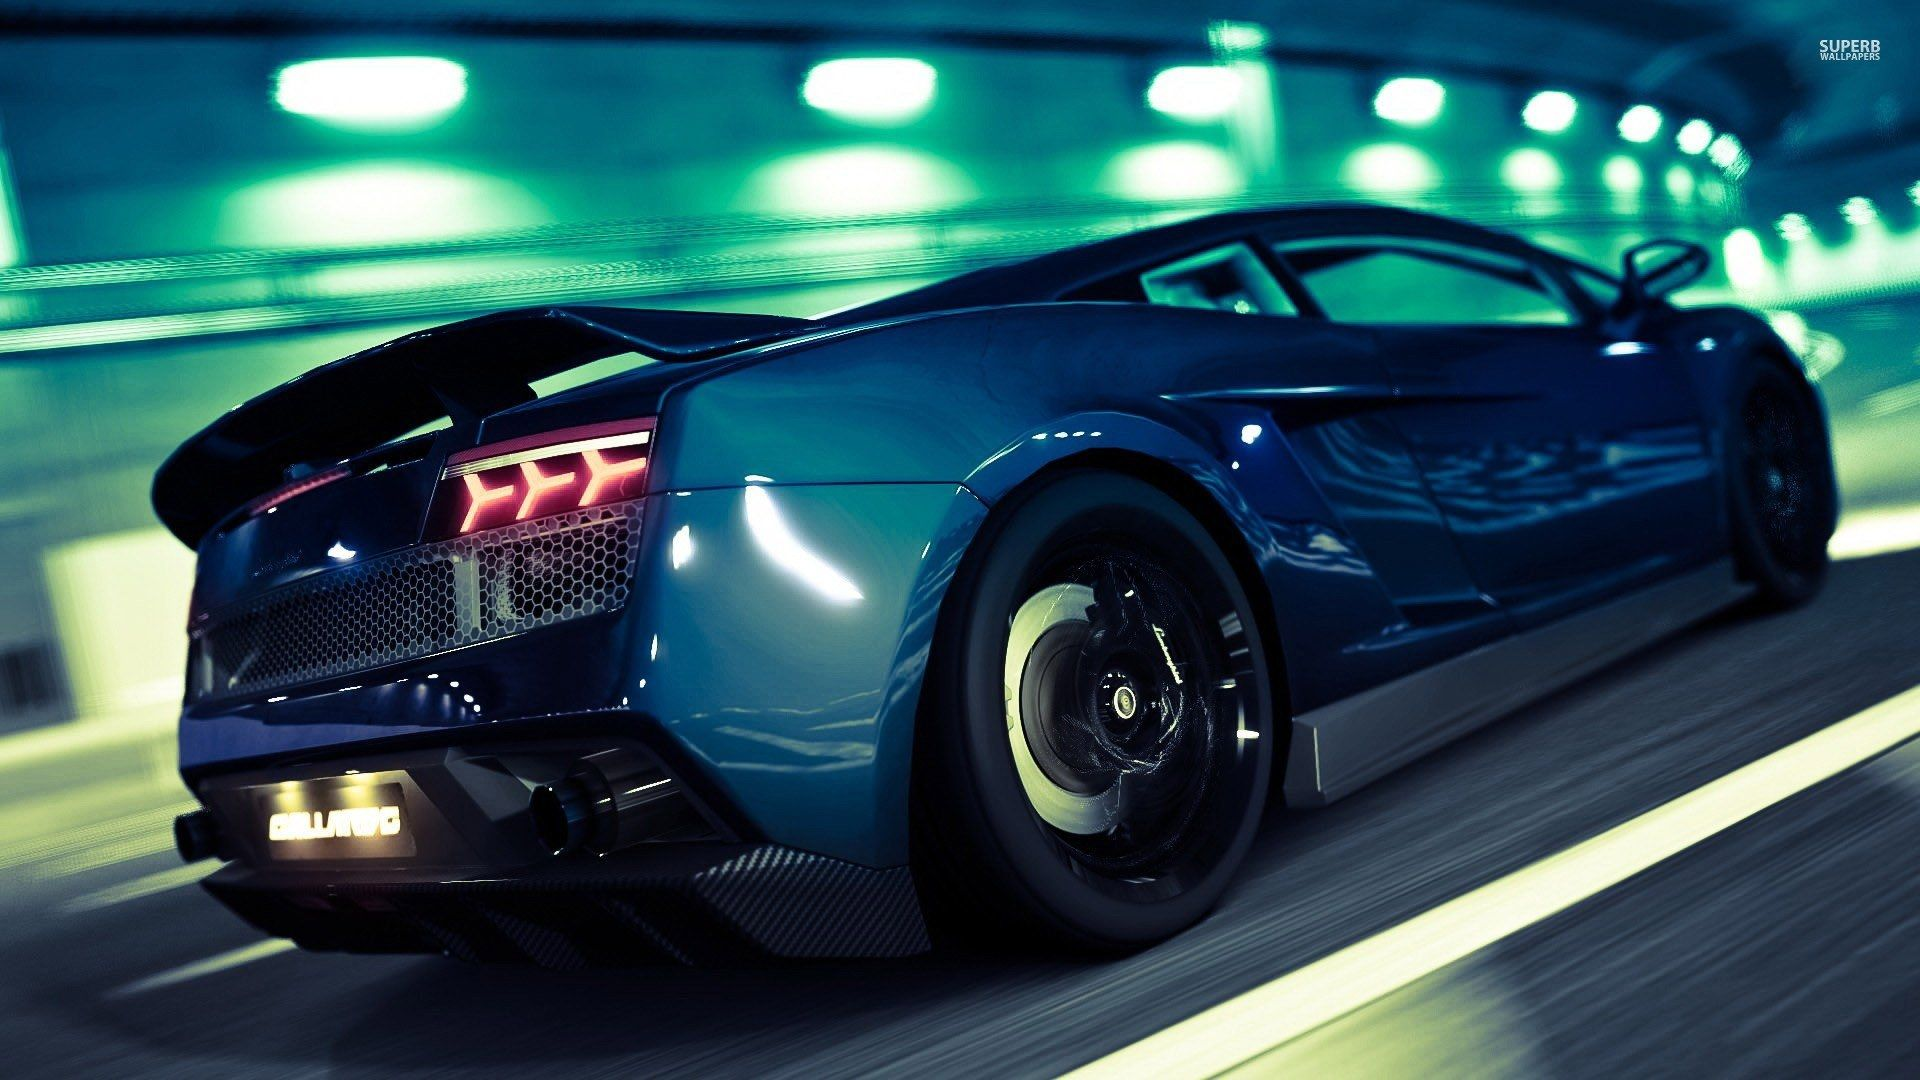 wallpapers wallpaper s download other for picture cars hd lamborghini gallery desktop free photos